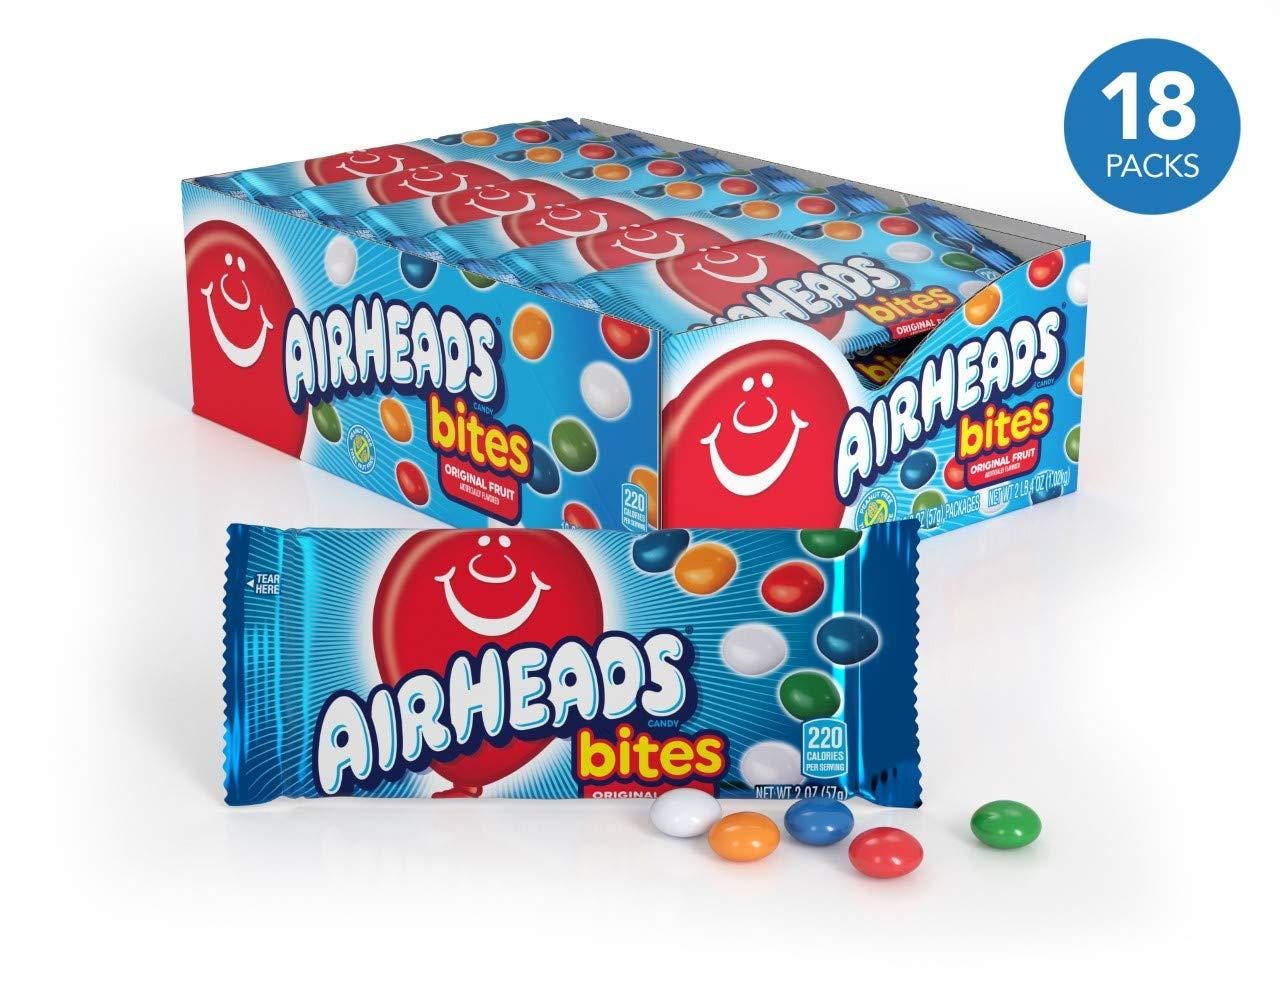 Airheads Bites - 18 count box [Free shipping via NinjaPack!]